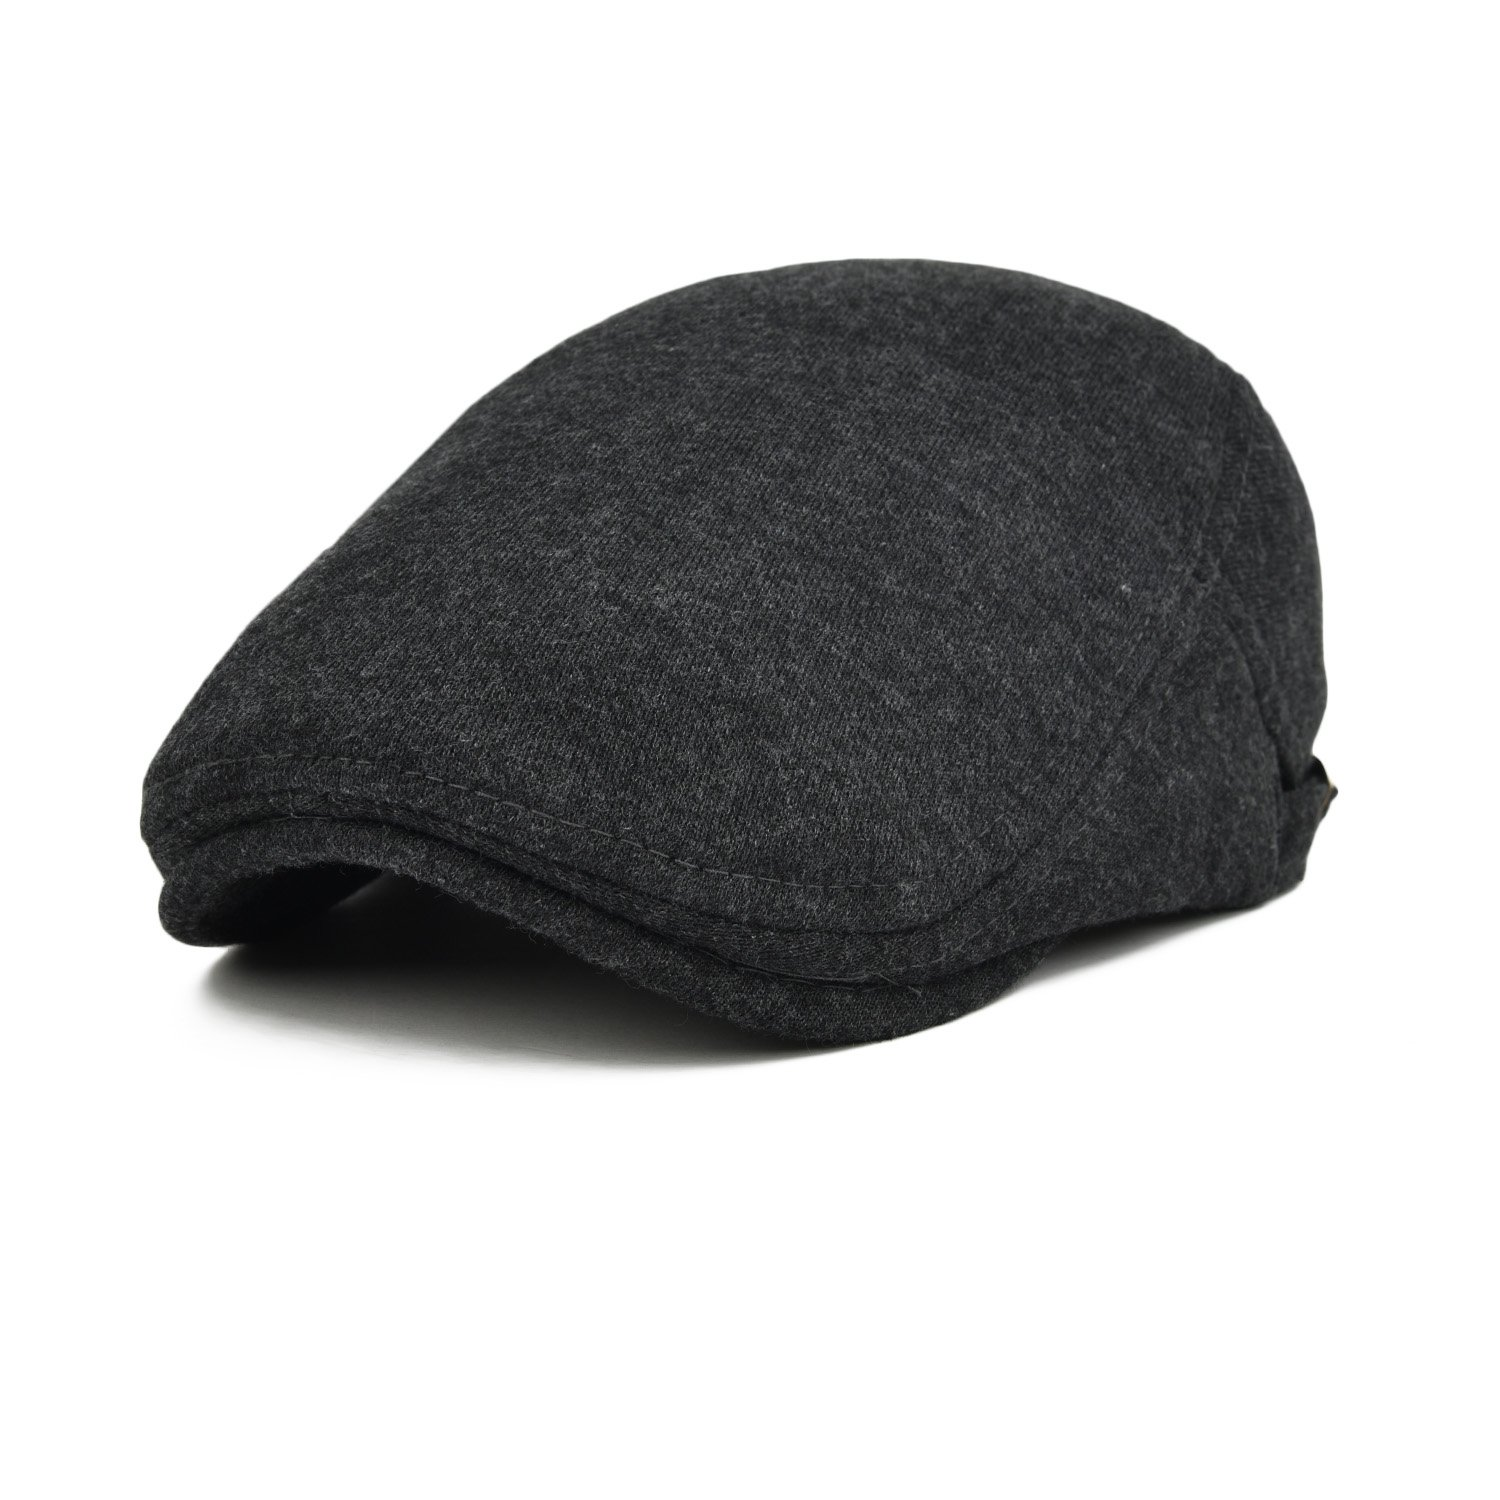 e812f42f VOBOOM Men's Cotton Flat Ivy Gatsby Newsboy Driving Hat Cap product image